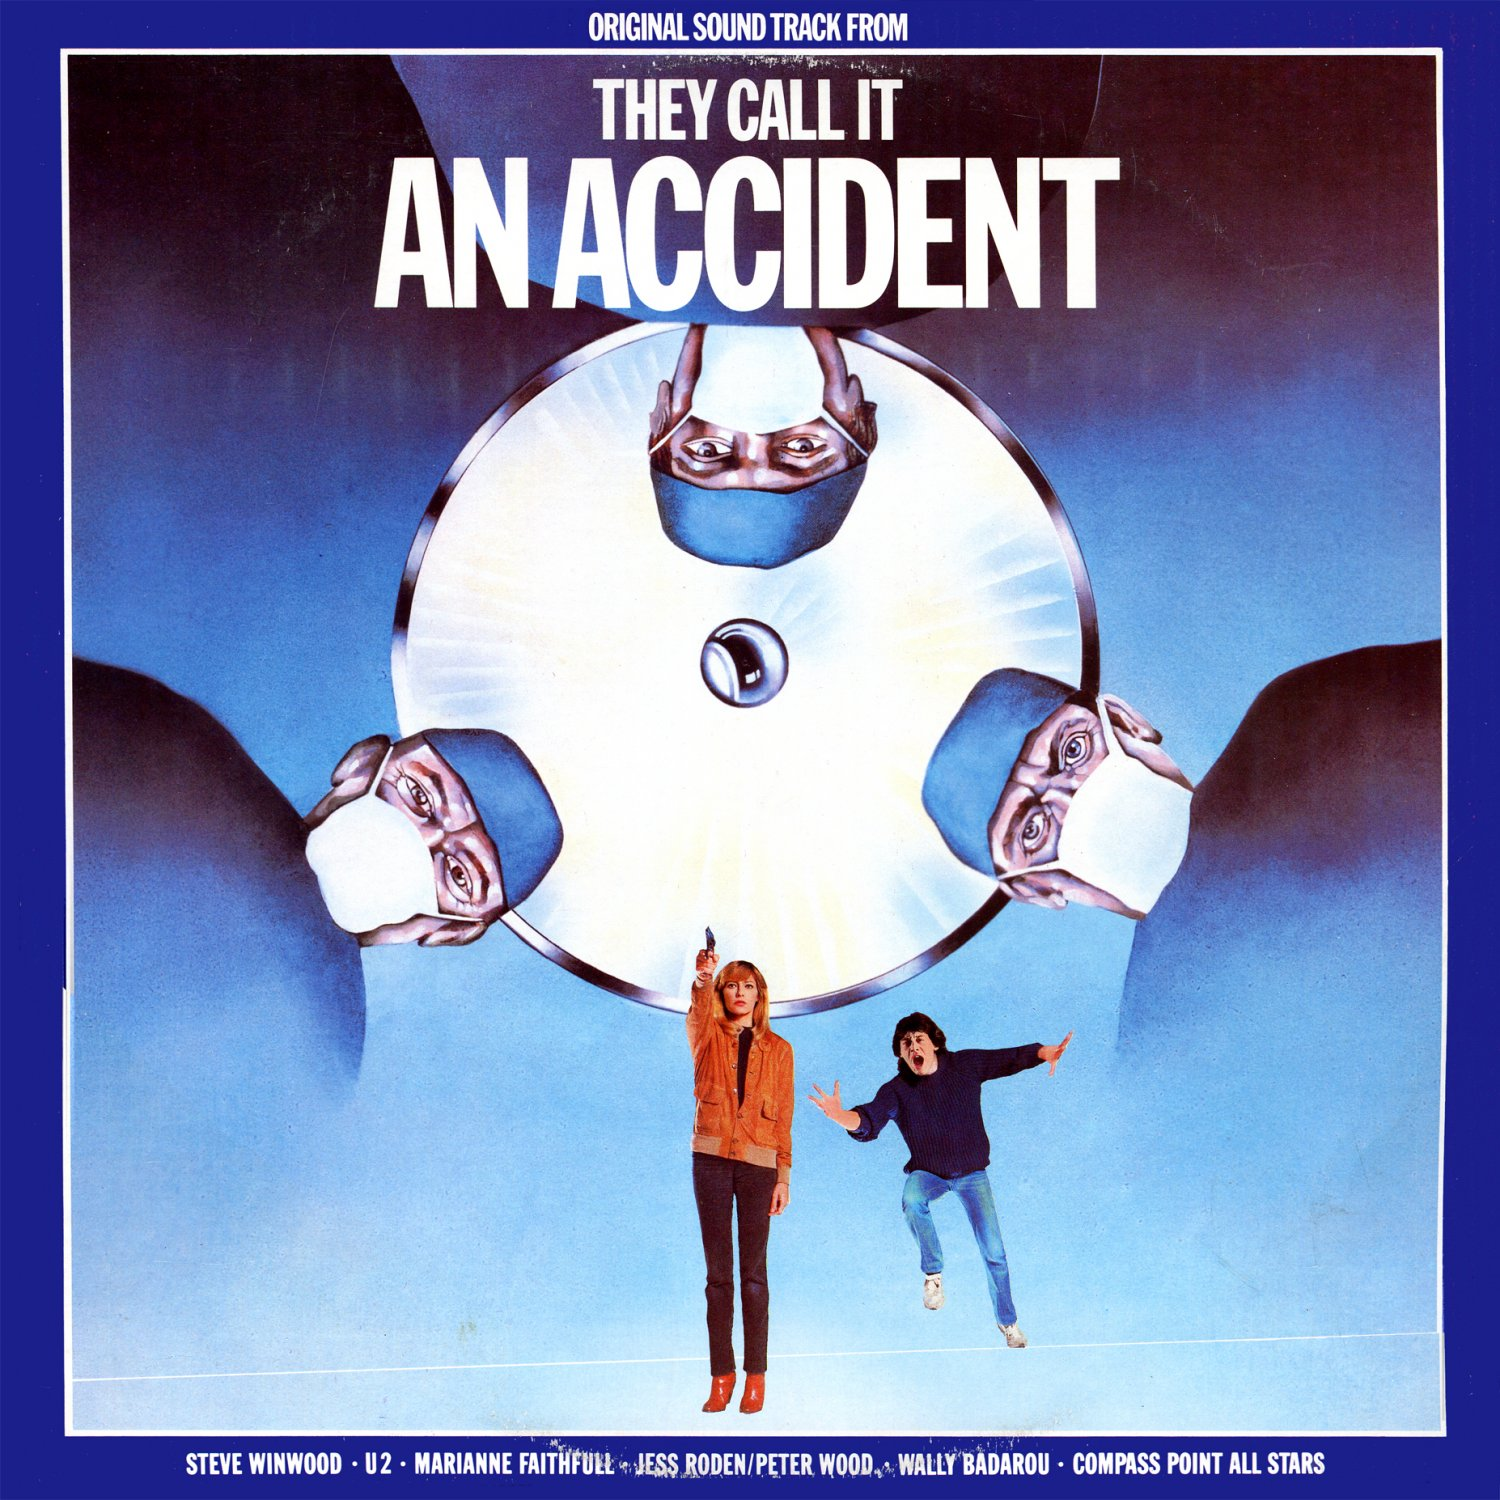 They Call It An Accident - Original Soundtrack, Steve Winwood OST LP/CD